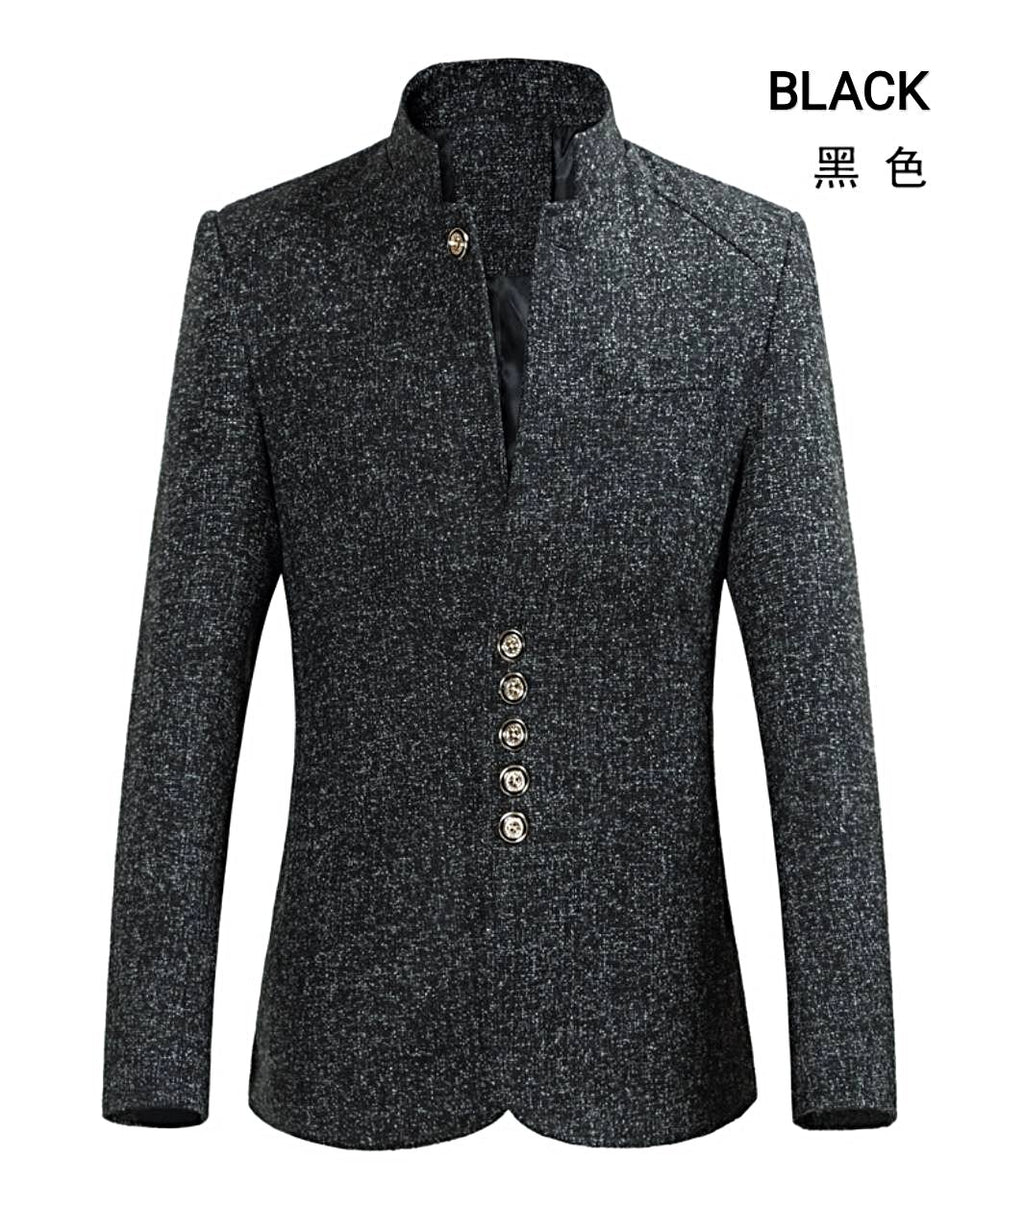 Asia size men young looking stand collar suit / coat.